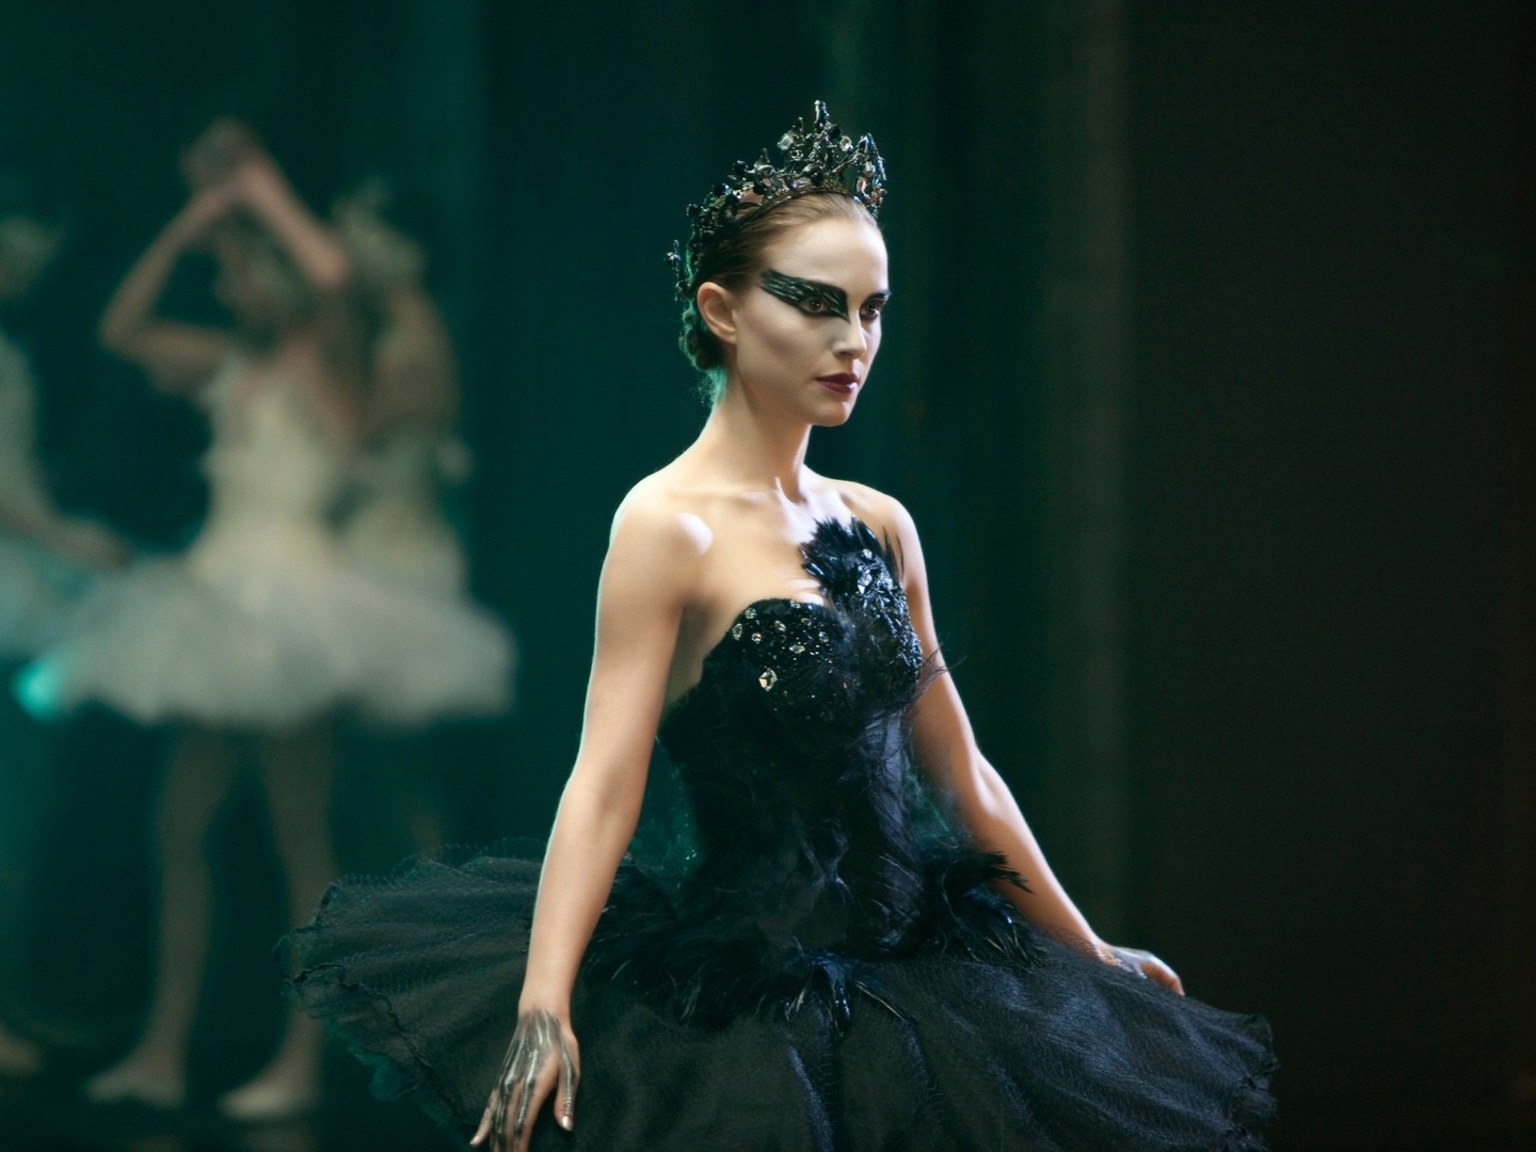 Natalie Portman plays the Black Swan (2010)